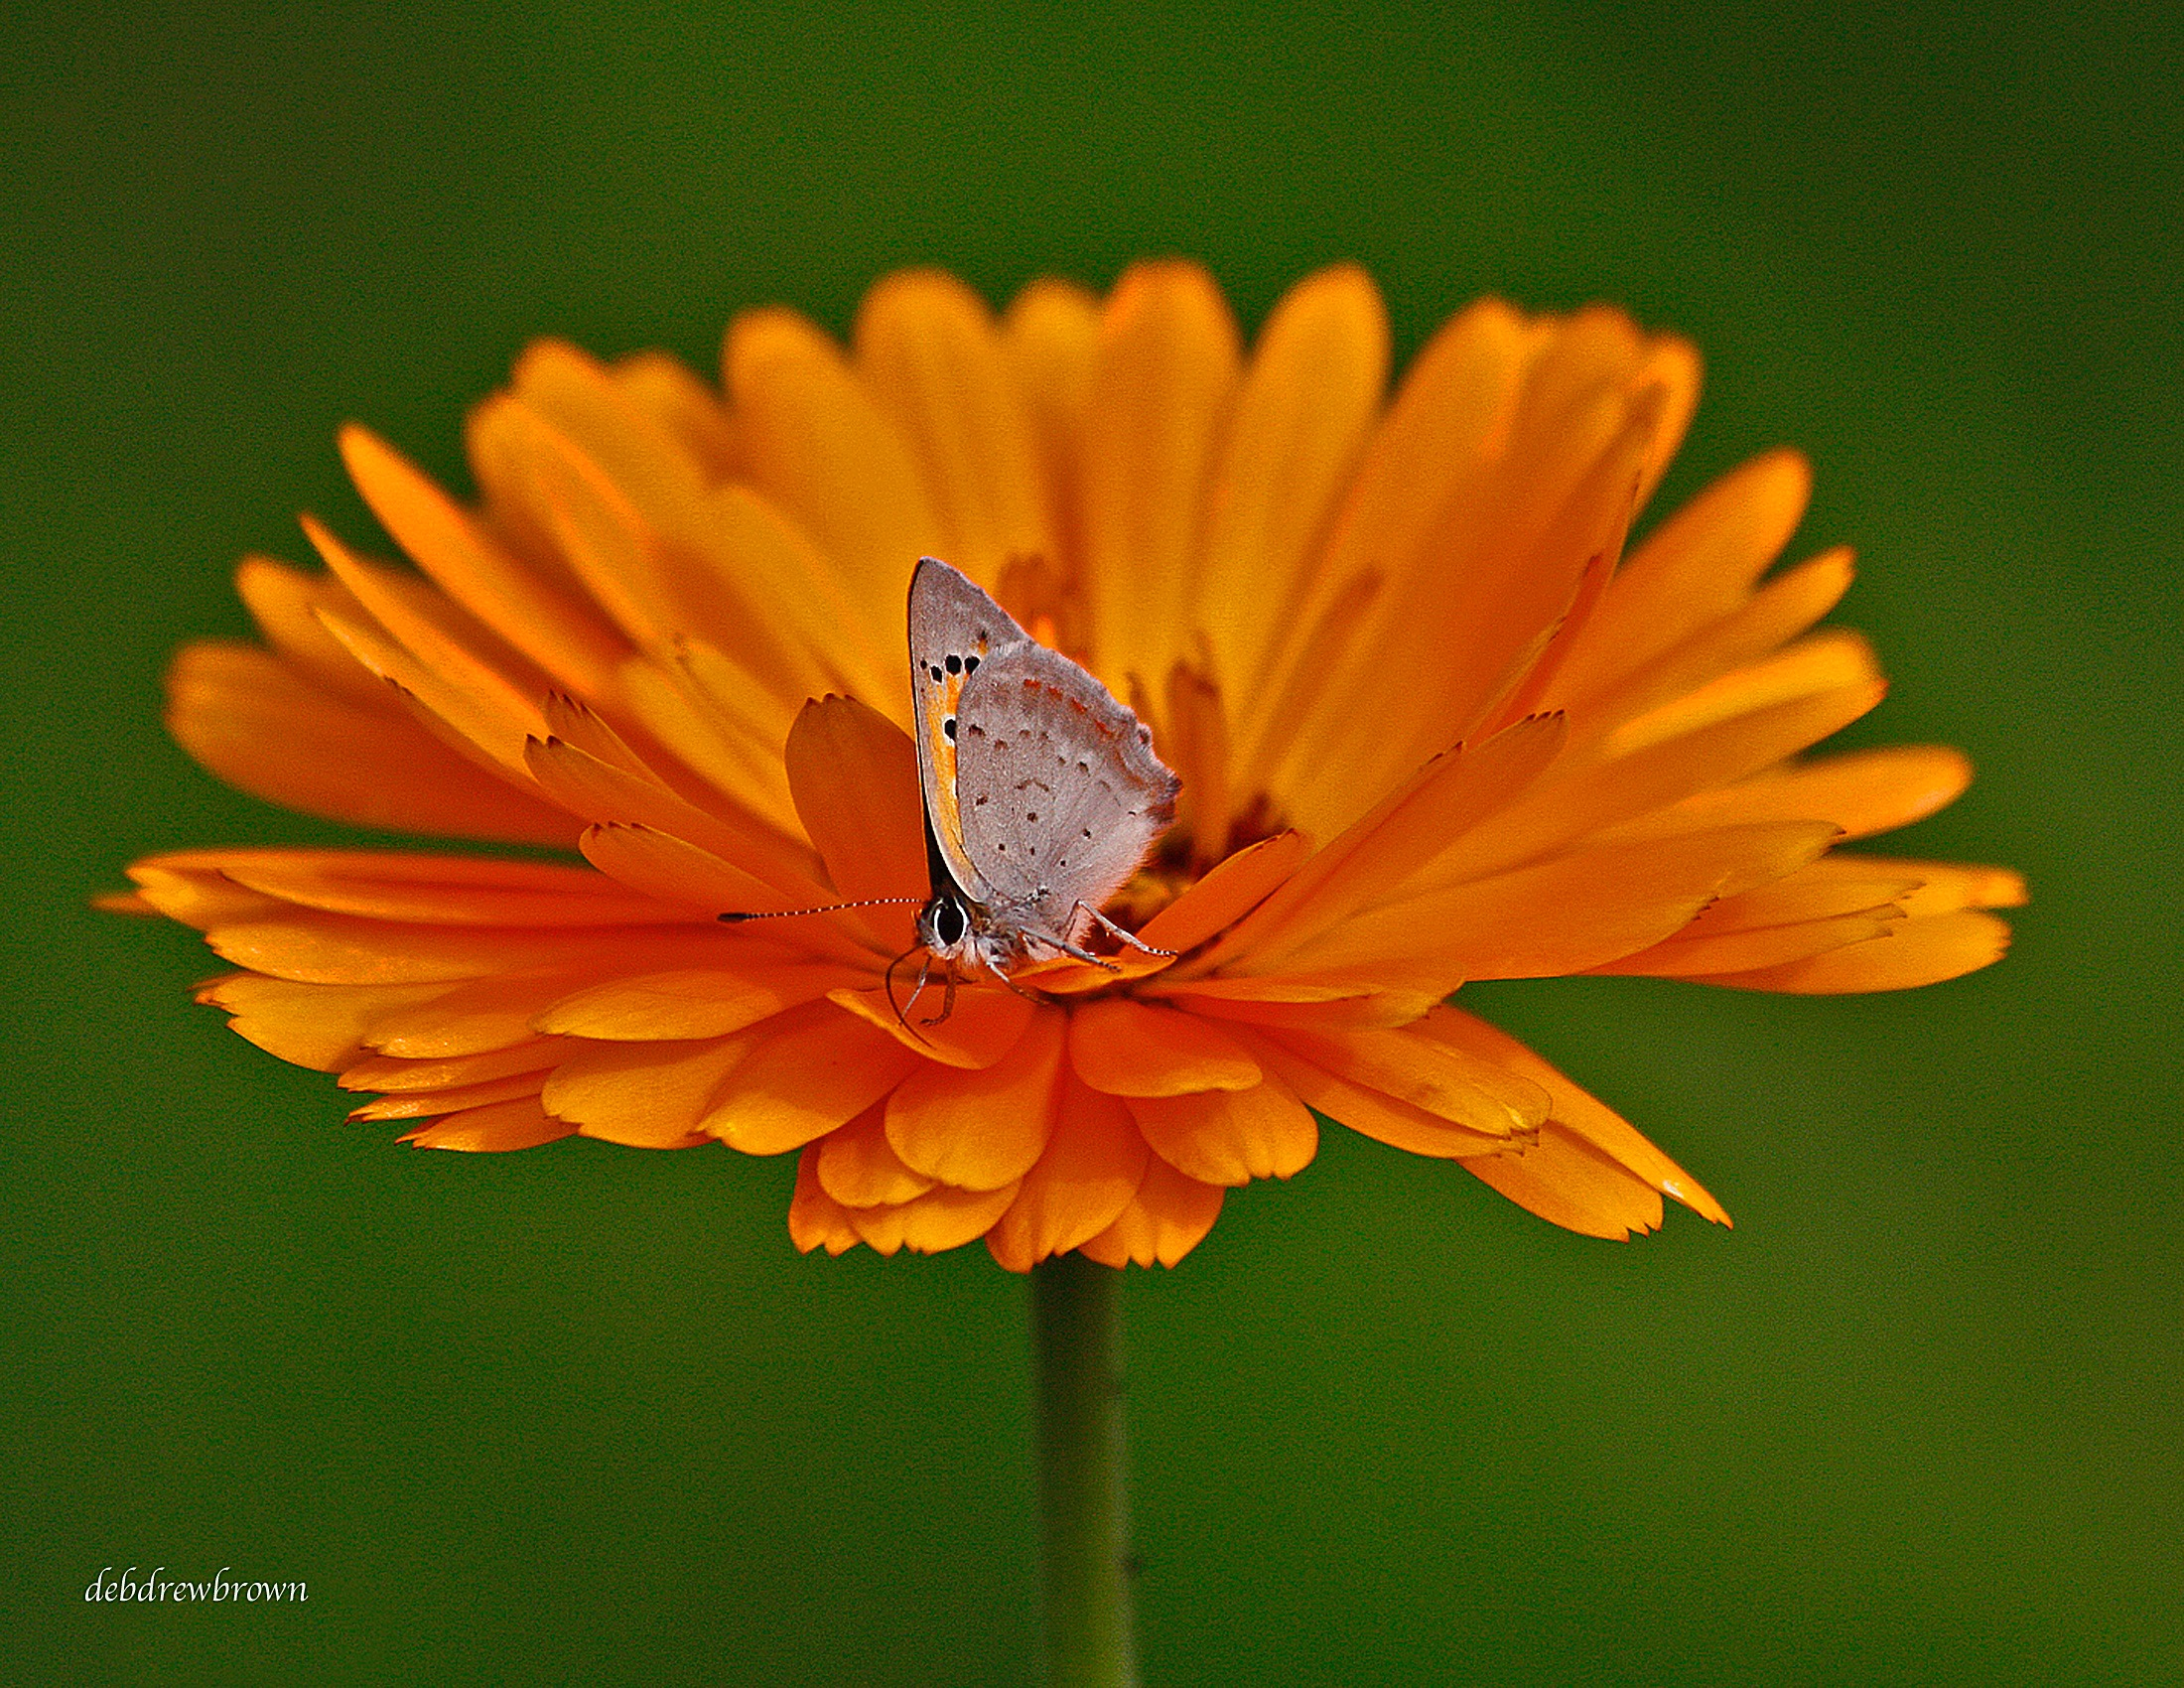 Butterfl Mies Moth on Orange flower Sweden _MG_7310.jpg